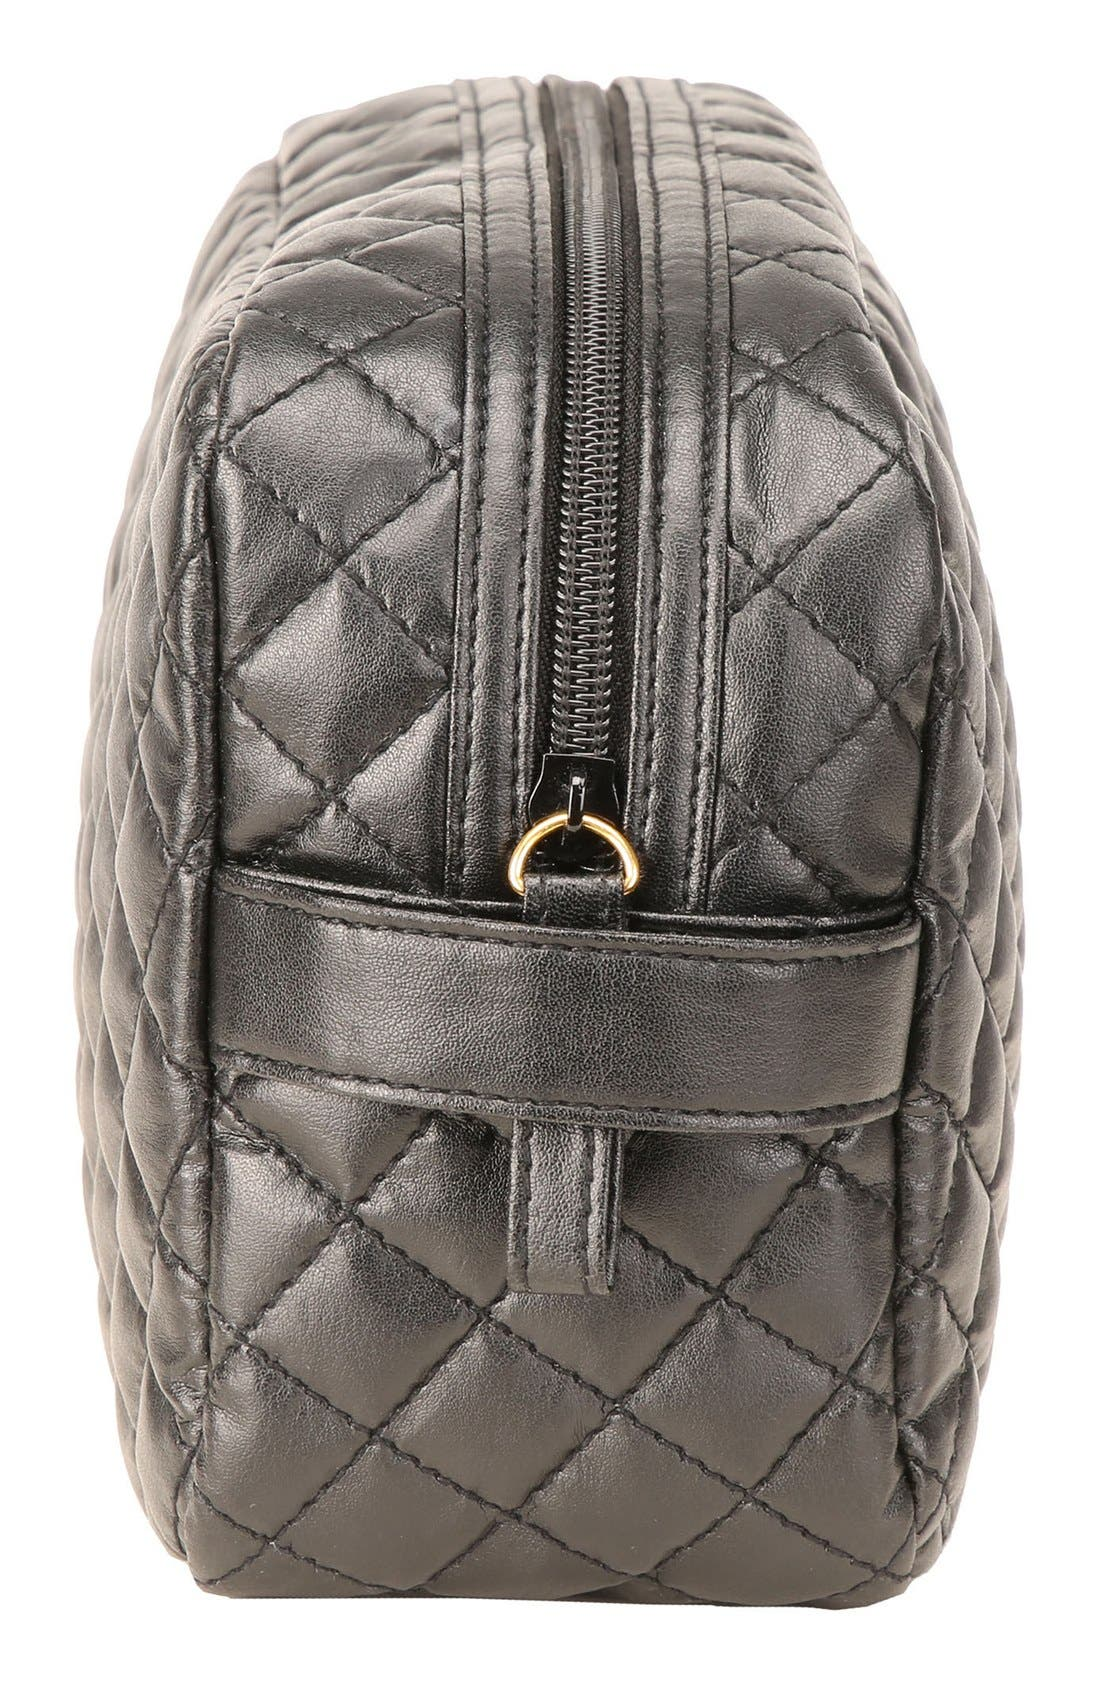 'Viveca' Quilted Black Cosmetics Case,                             Alternate thumbnail 3, color,                             000